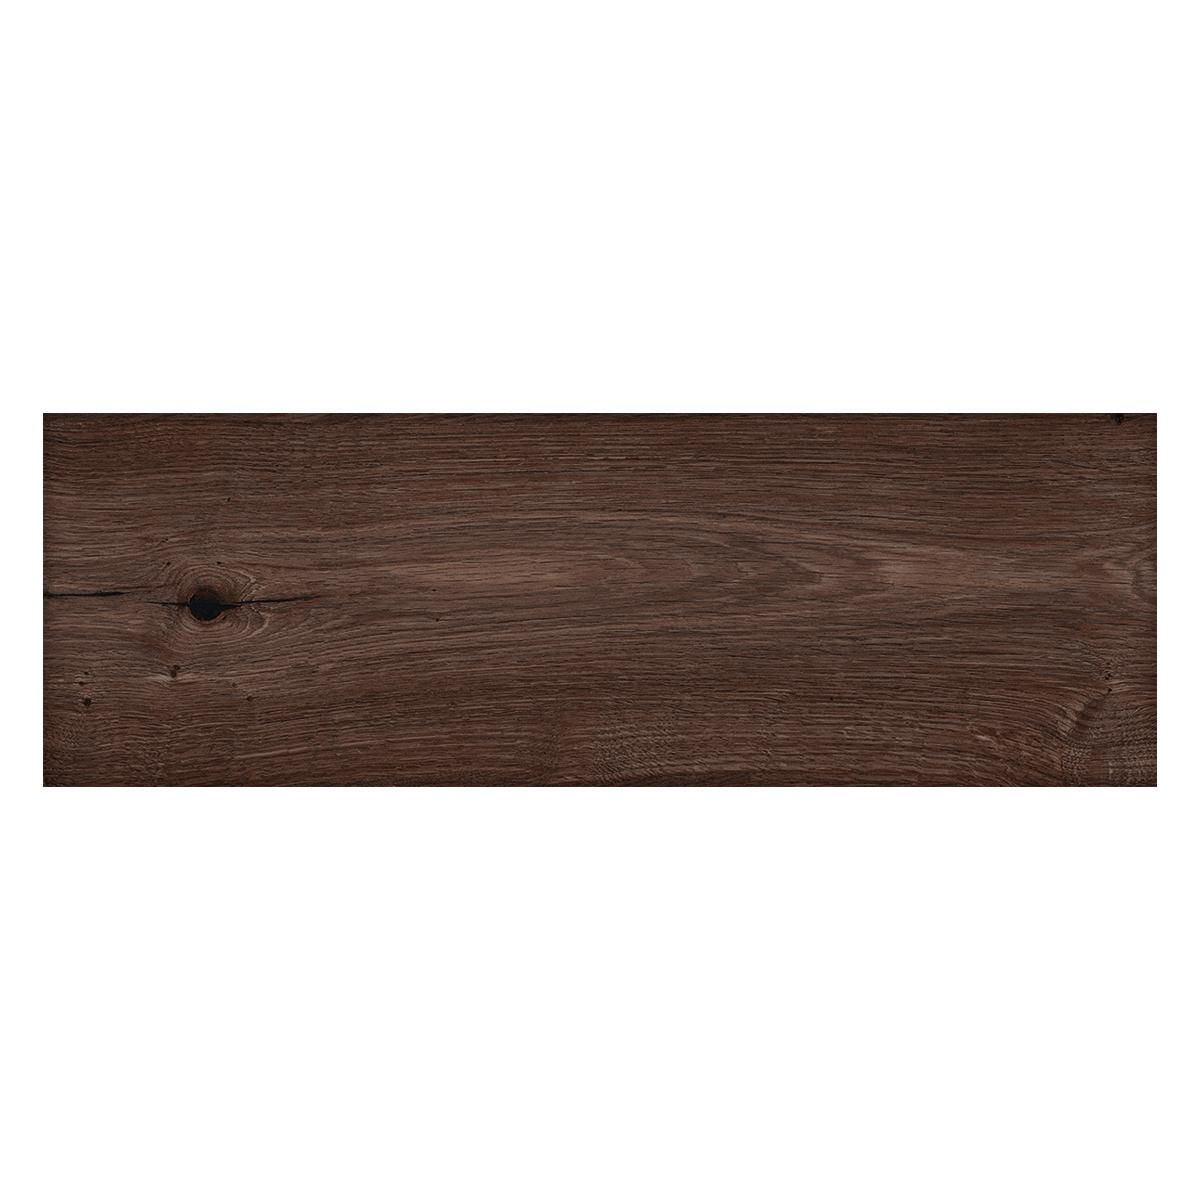 Gres Porcelánico Tallin Roble Mate - 20X60 cm - 1.08 m2